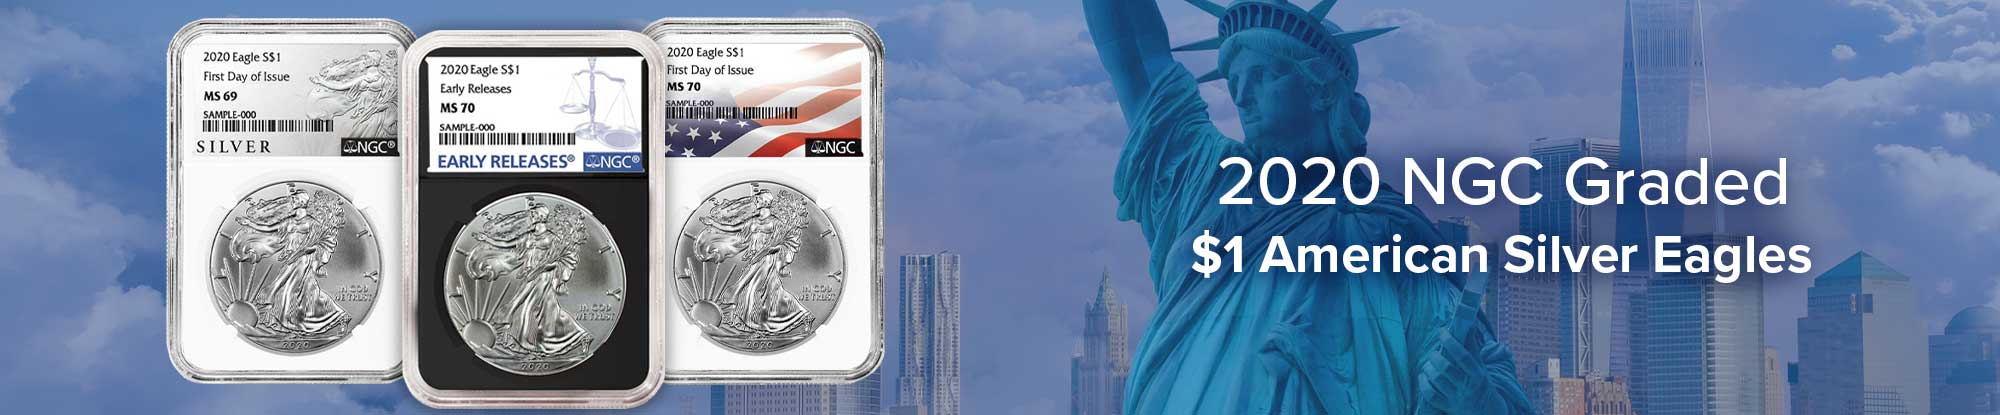 2020 NGC Graded $1 American Silver Eagle